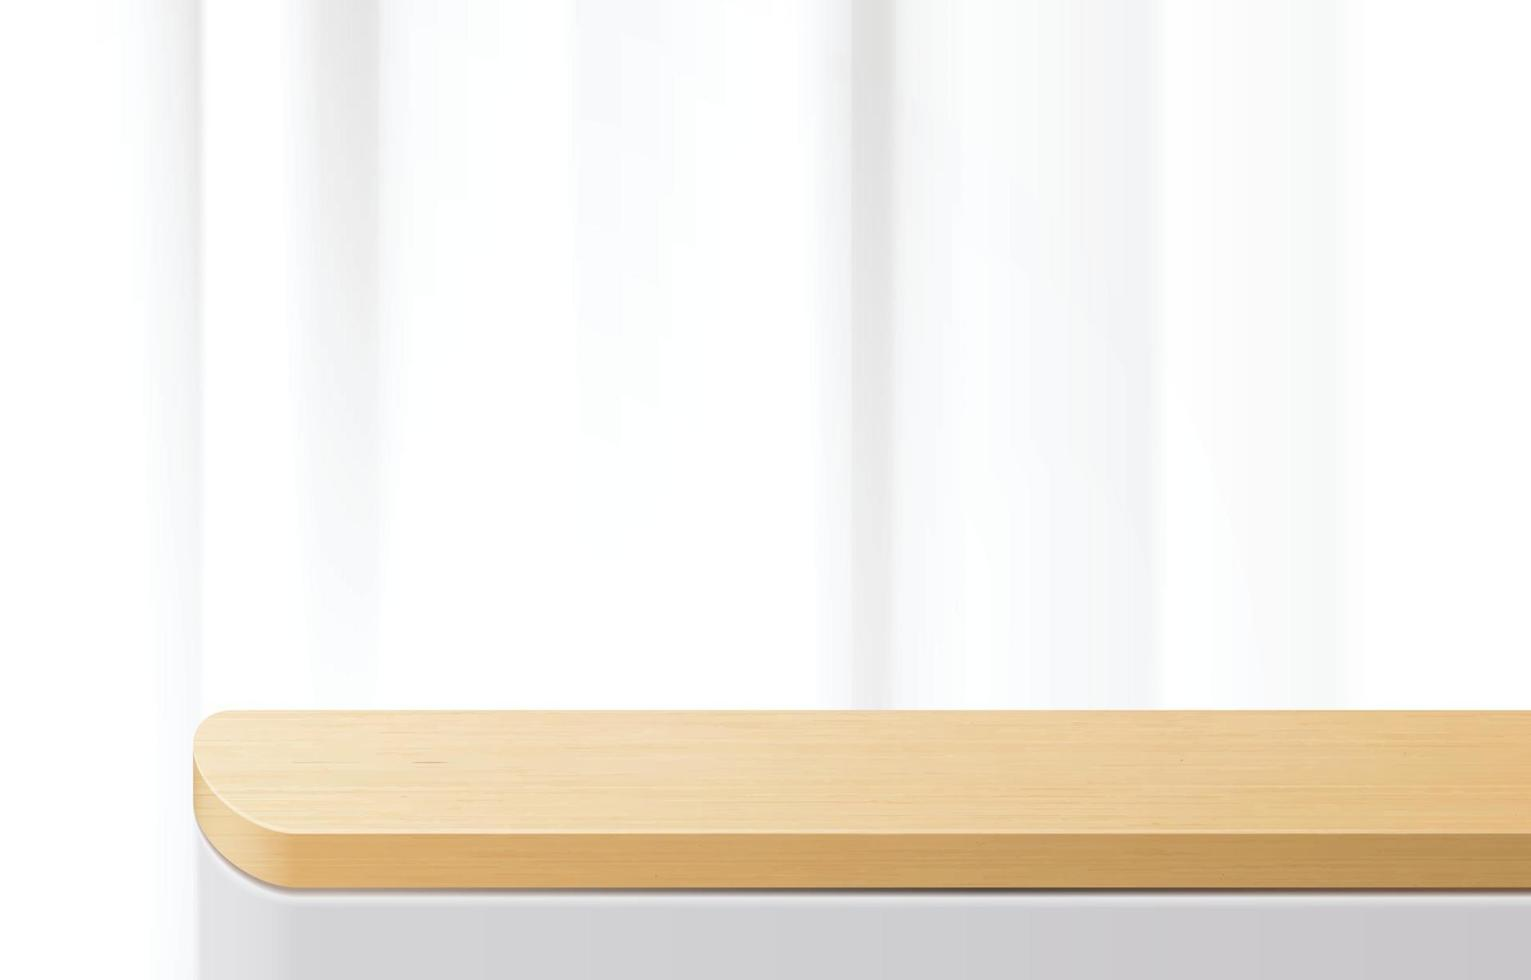 Empty minimal wooden top table, wood podium in white background. foe product presentation, mock up, show cosmetic product display, Podium, stage pedestal or platform. 3d vector